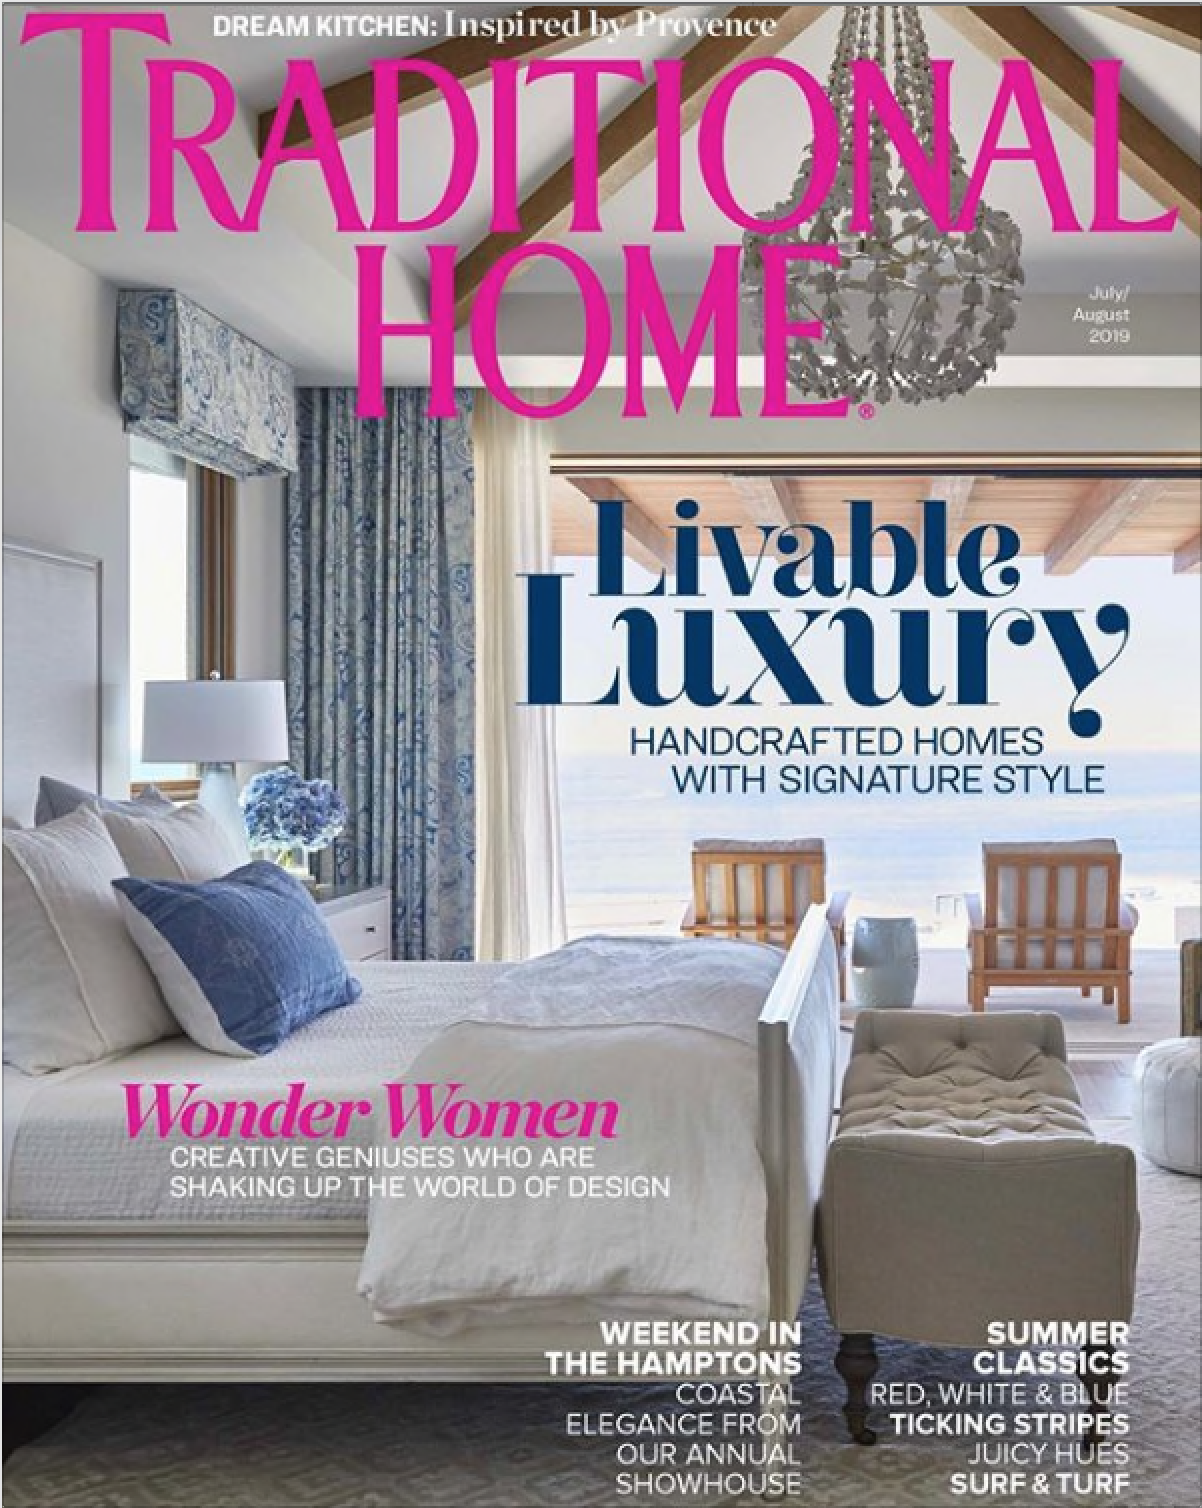 TRADITIONAL HOME July/Aug 19